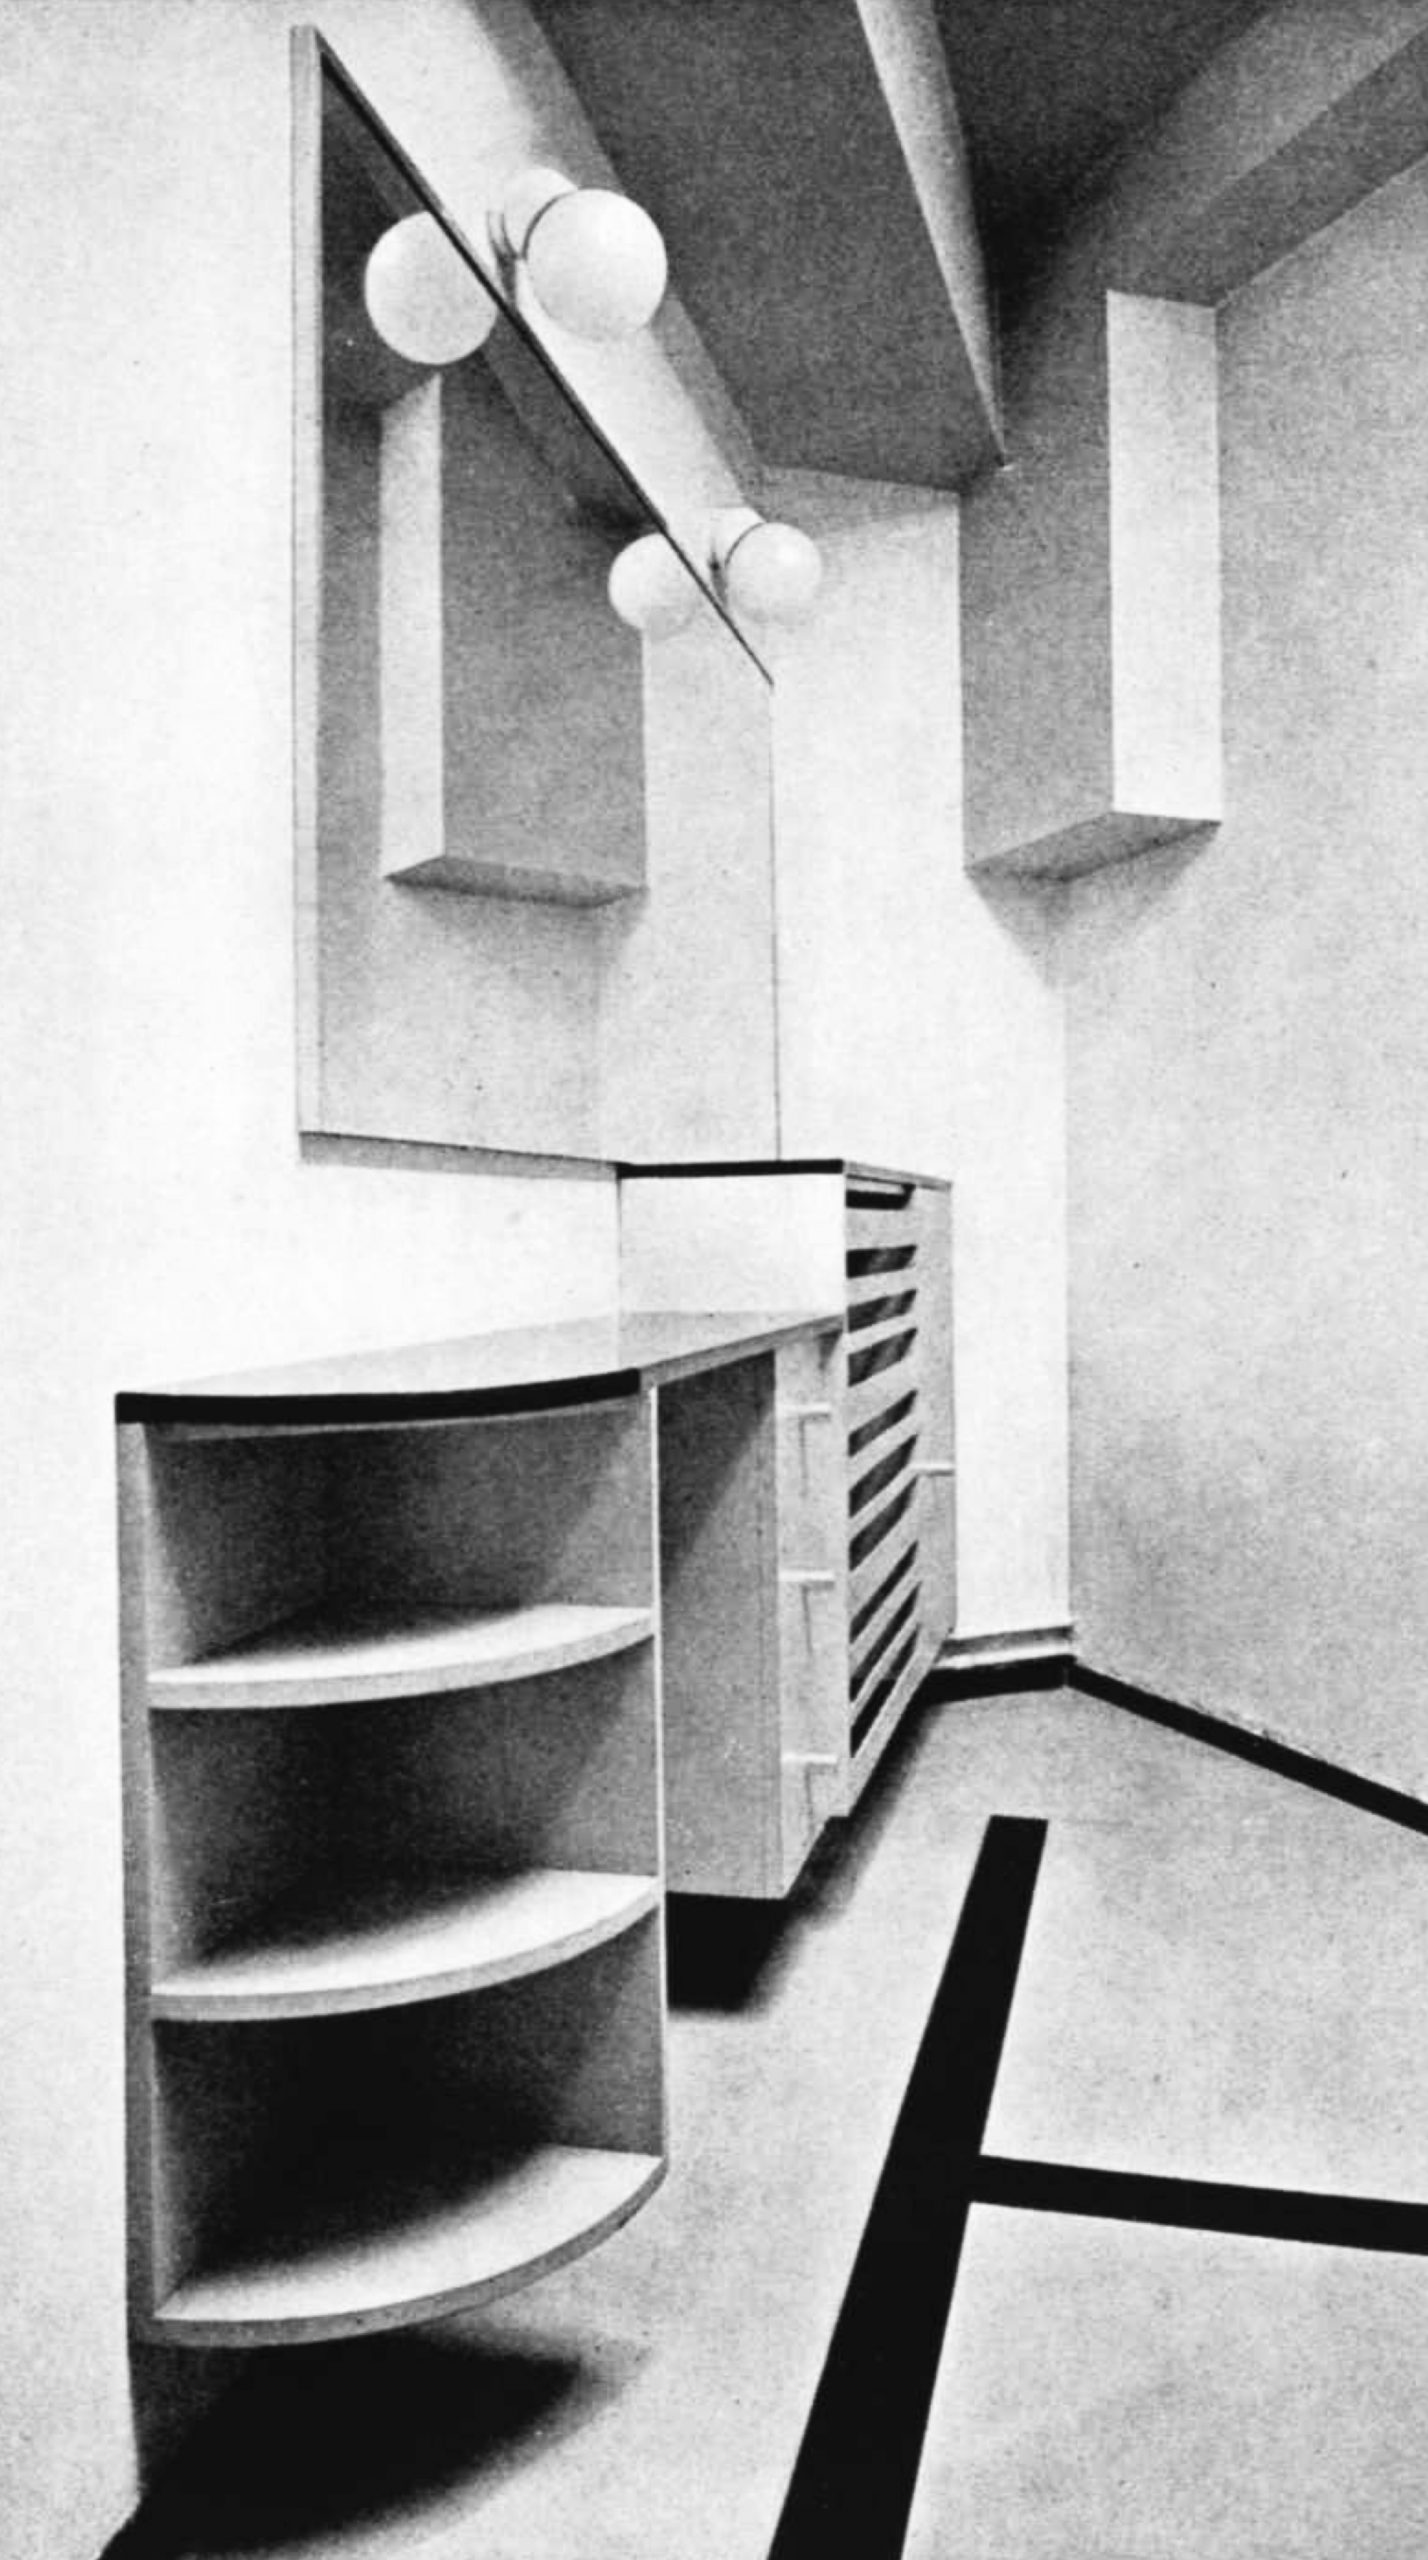 A small room with shelves, drawers, cupboards and a large illuminated mirror